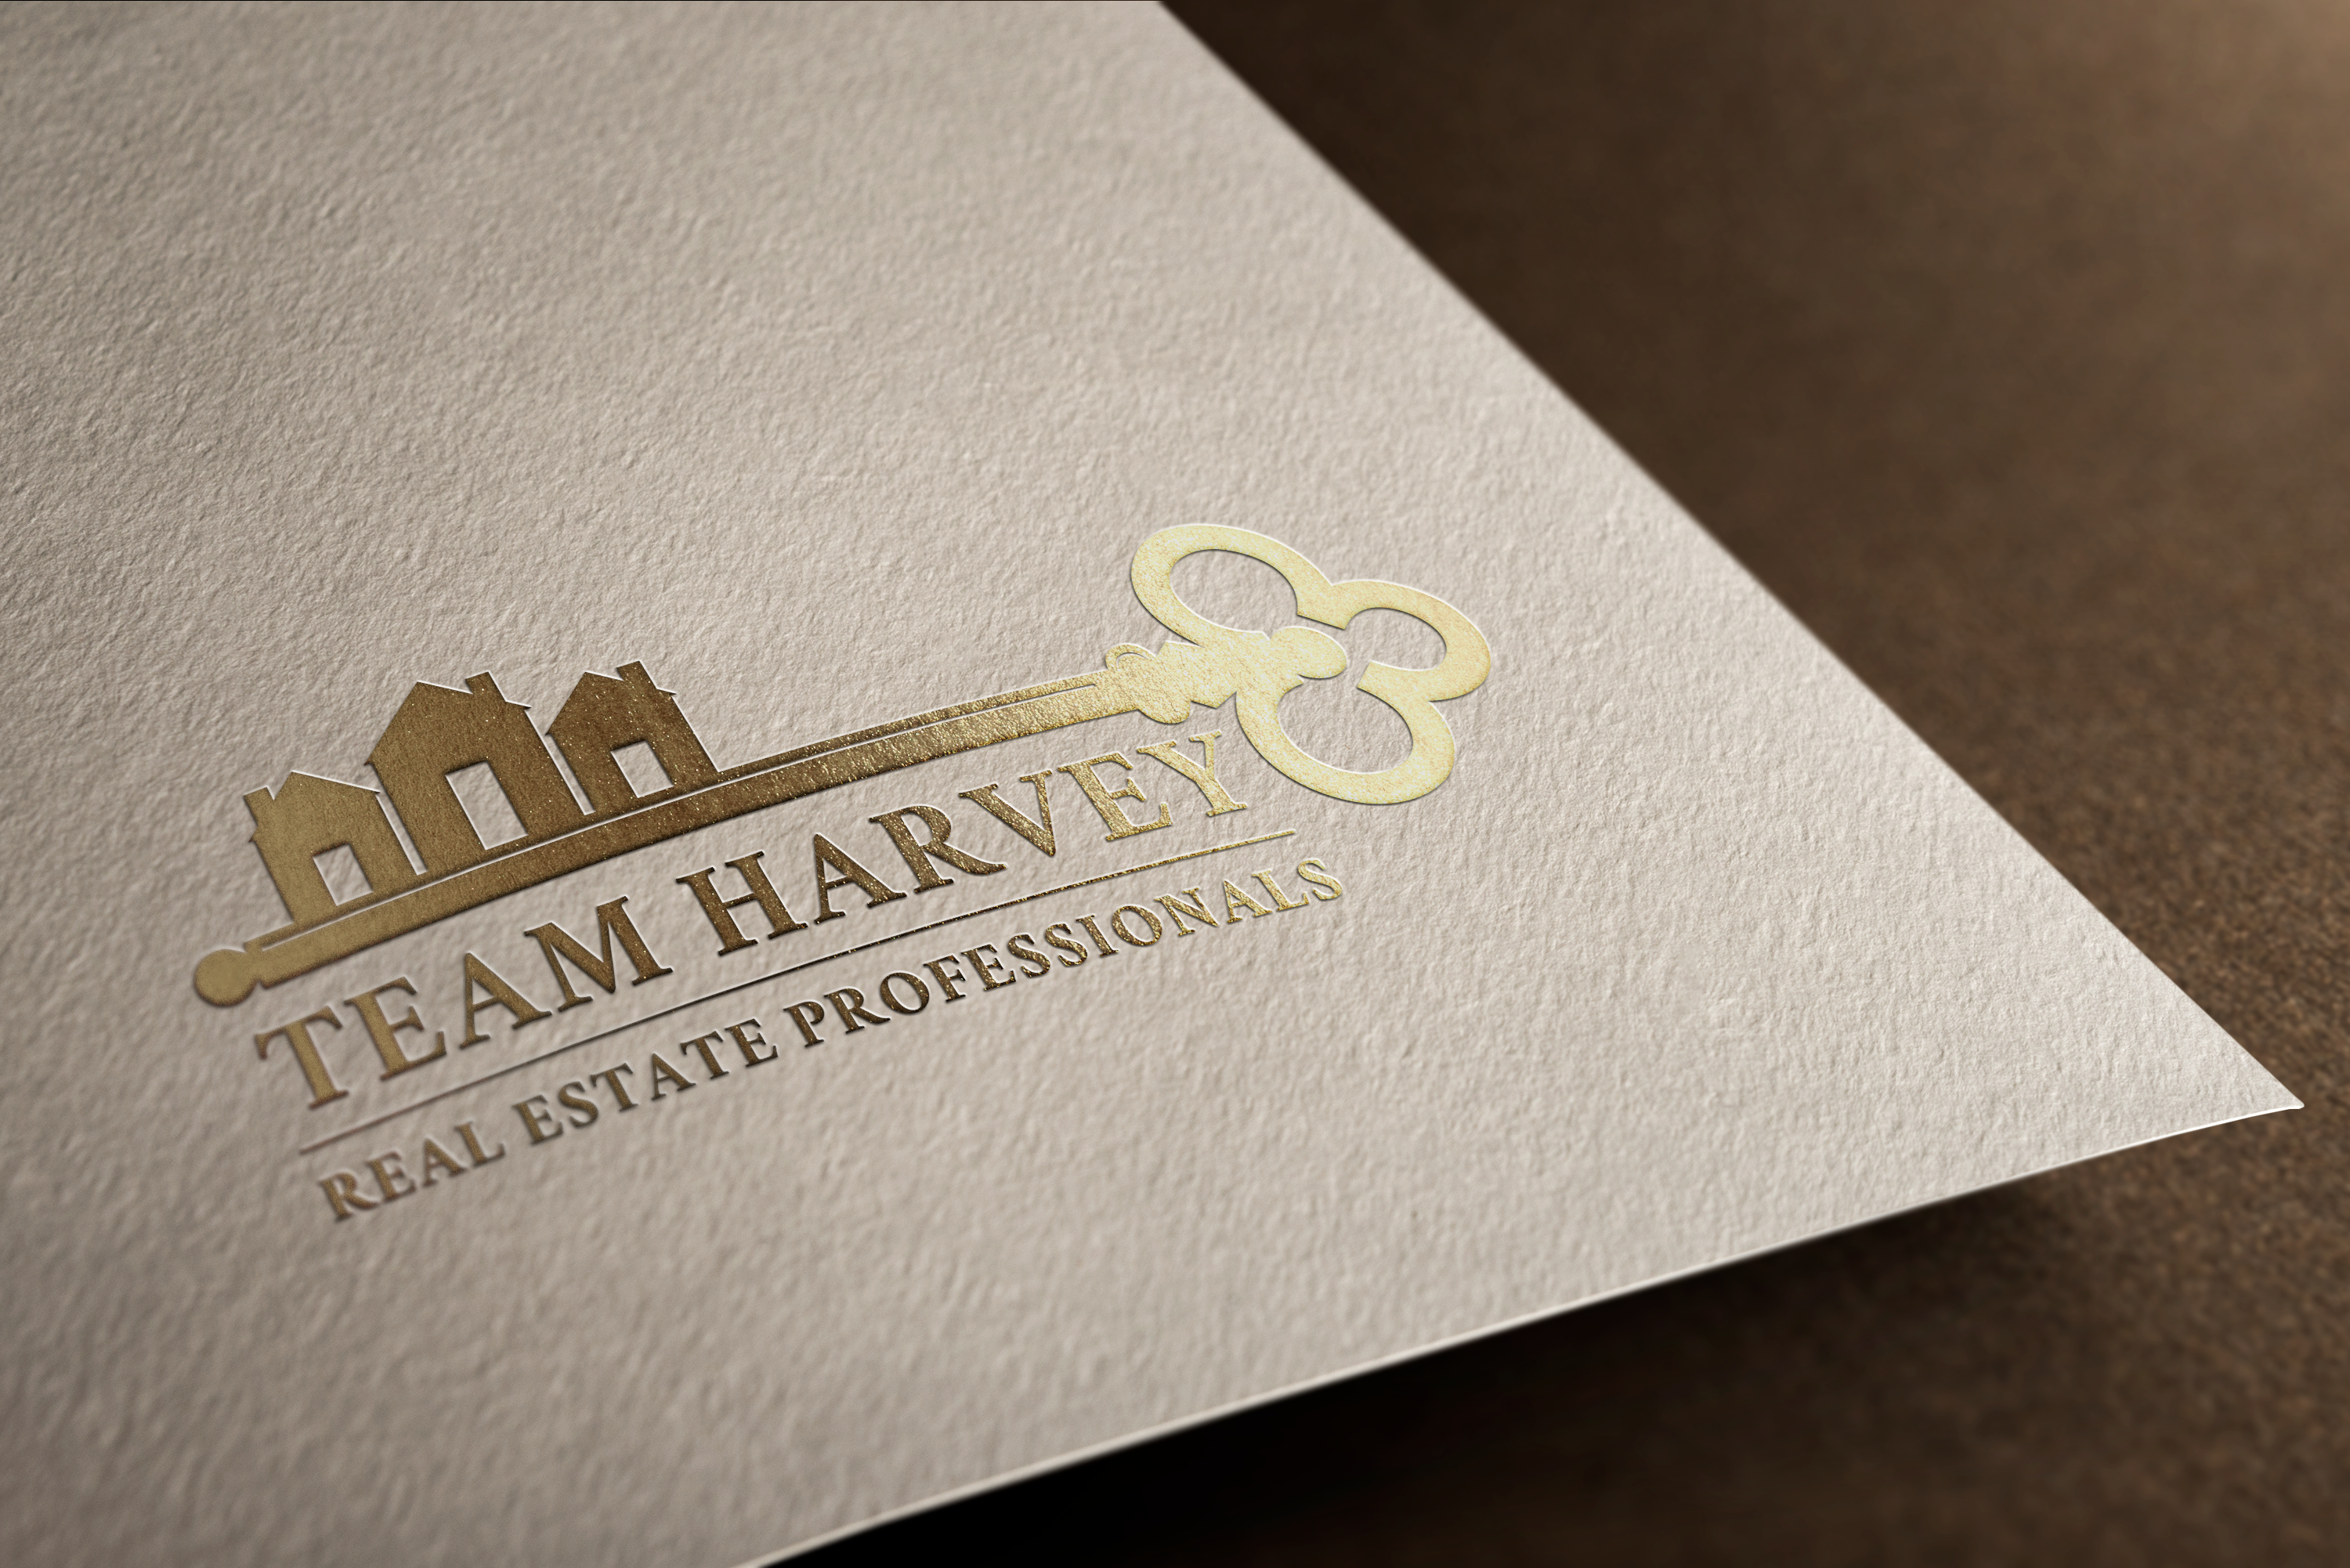 TEAM HARVEY REAL ESTATE